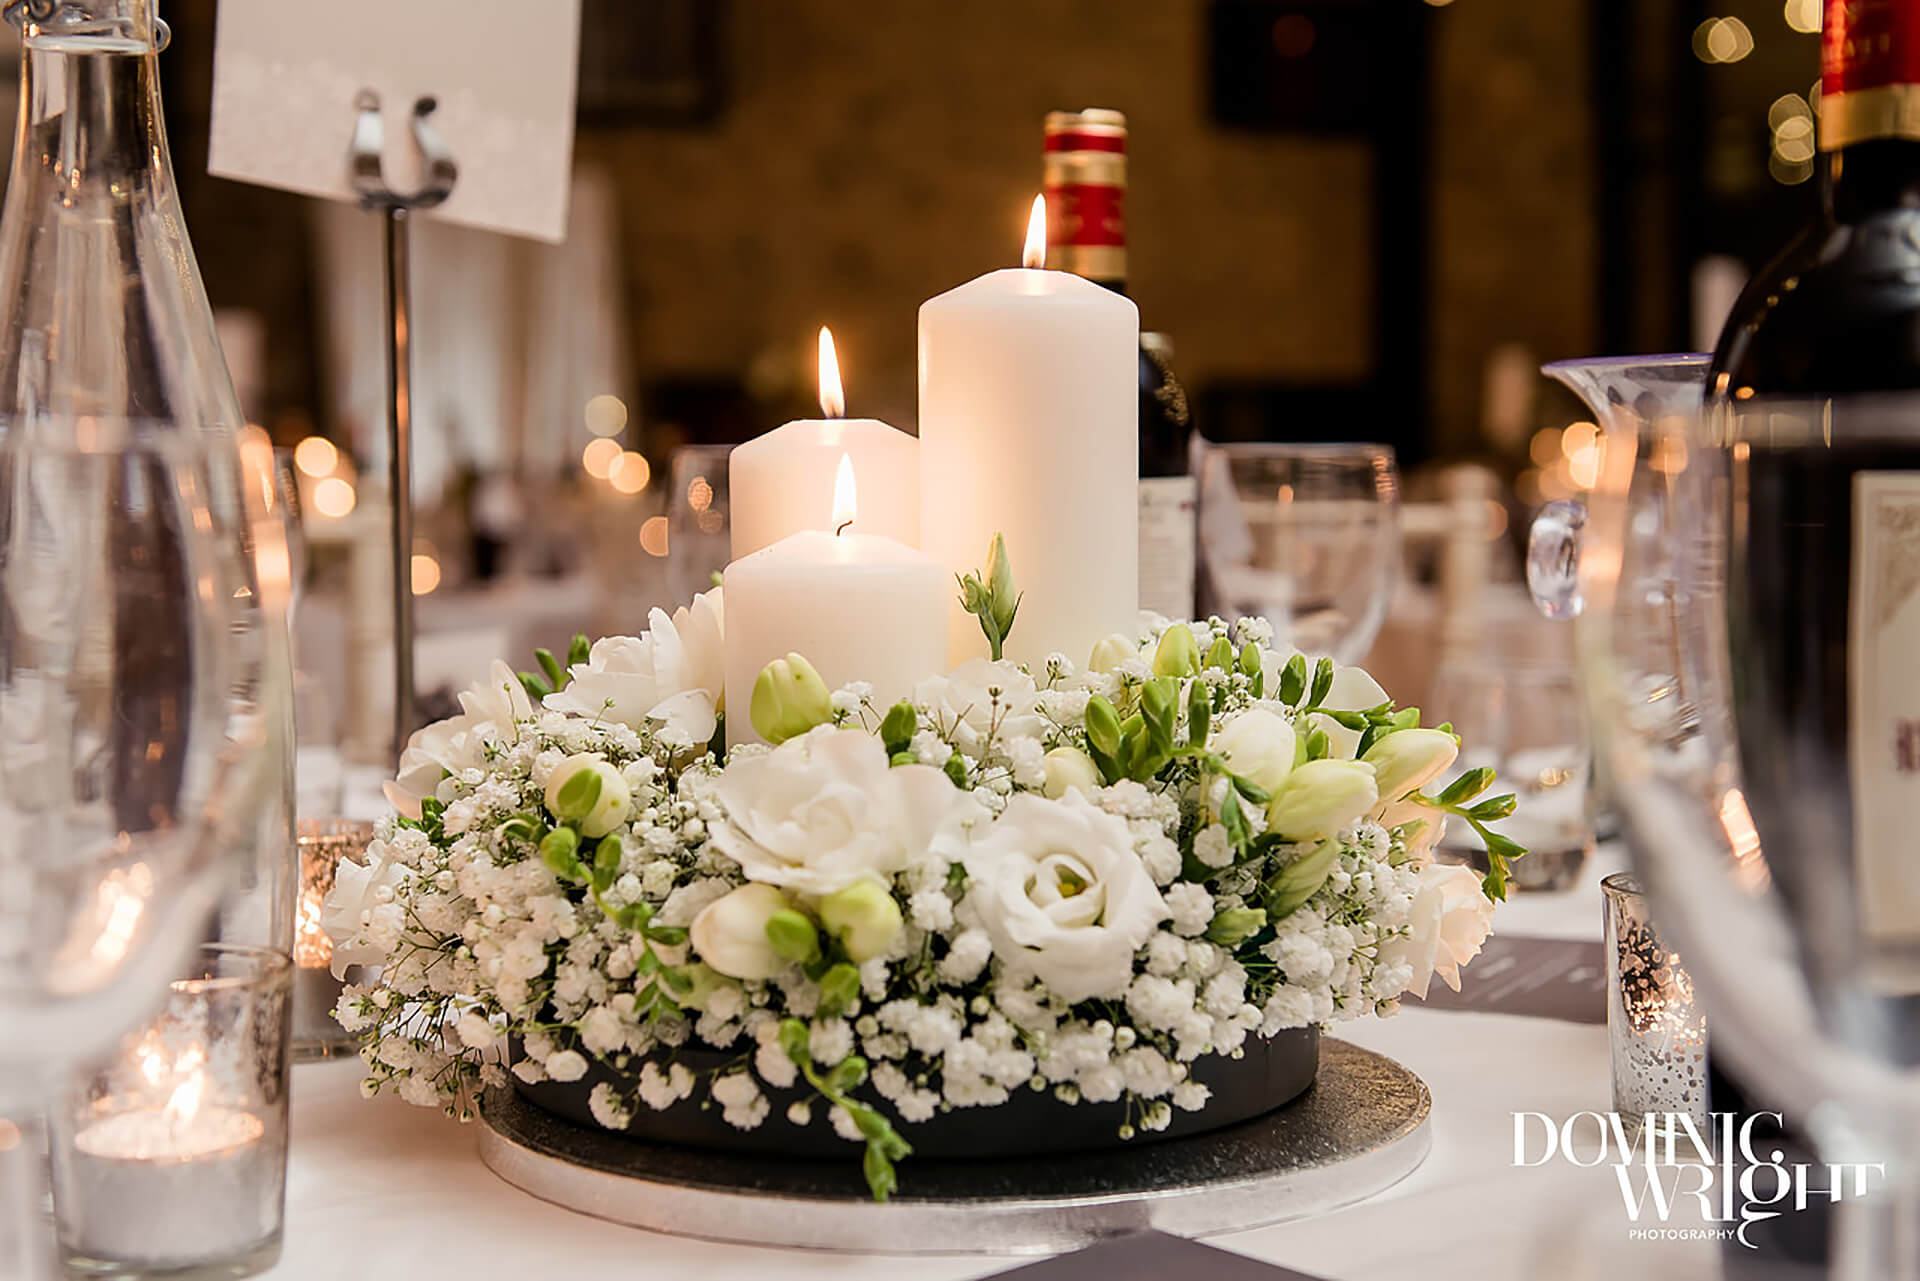 "Wintery centerpieces captured by <a href=""http://www.dominicwright.co.uk/"" target=""_blank"">Dominic Wright Photography</a>"